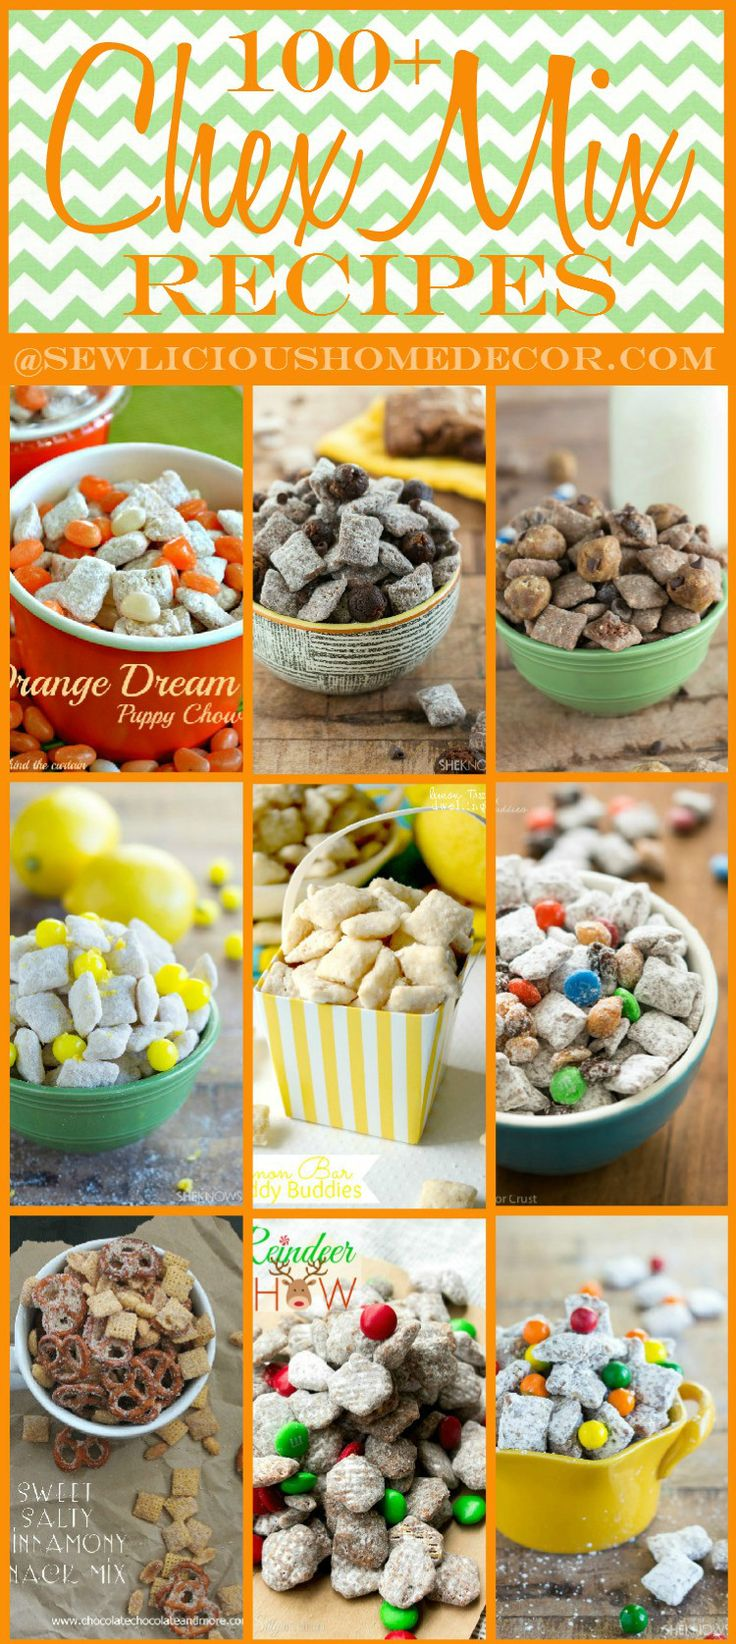 100+ Party Chex Mix Recipes. Great snacks, desserts, or appetizers! sewlicioushomedecor.com